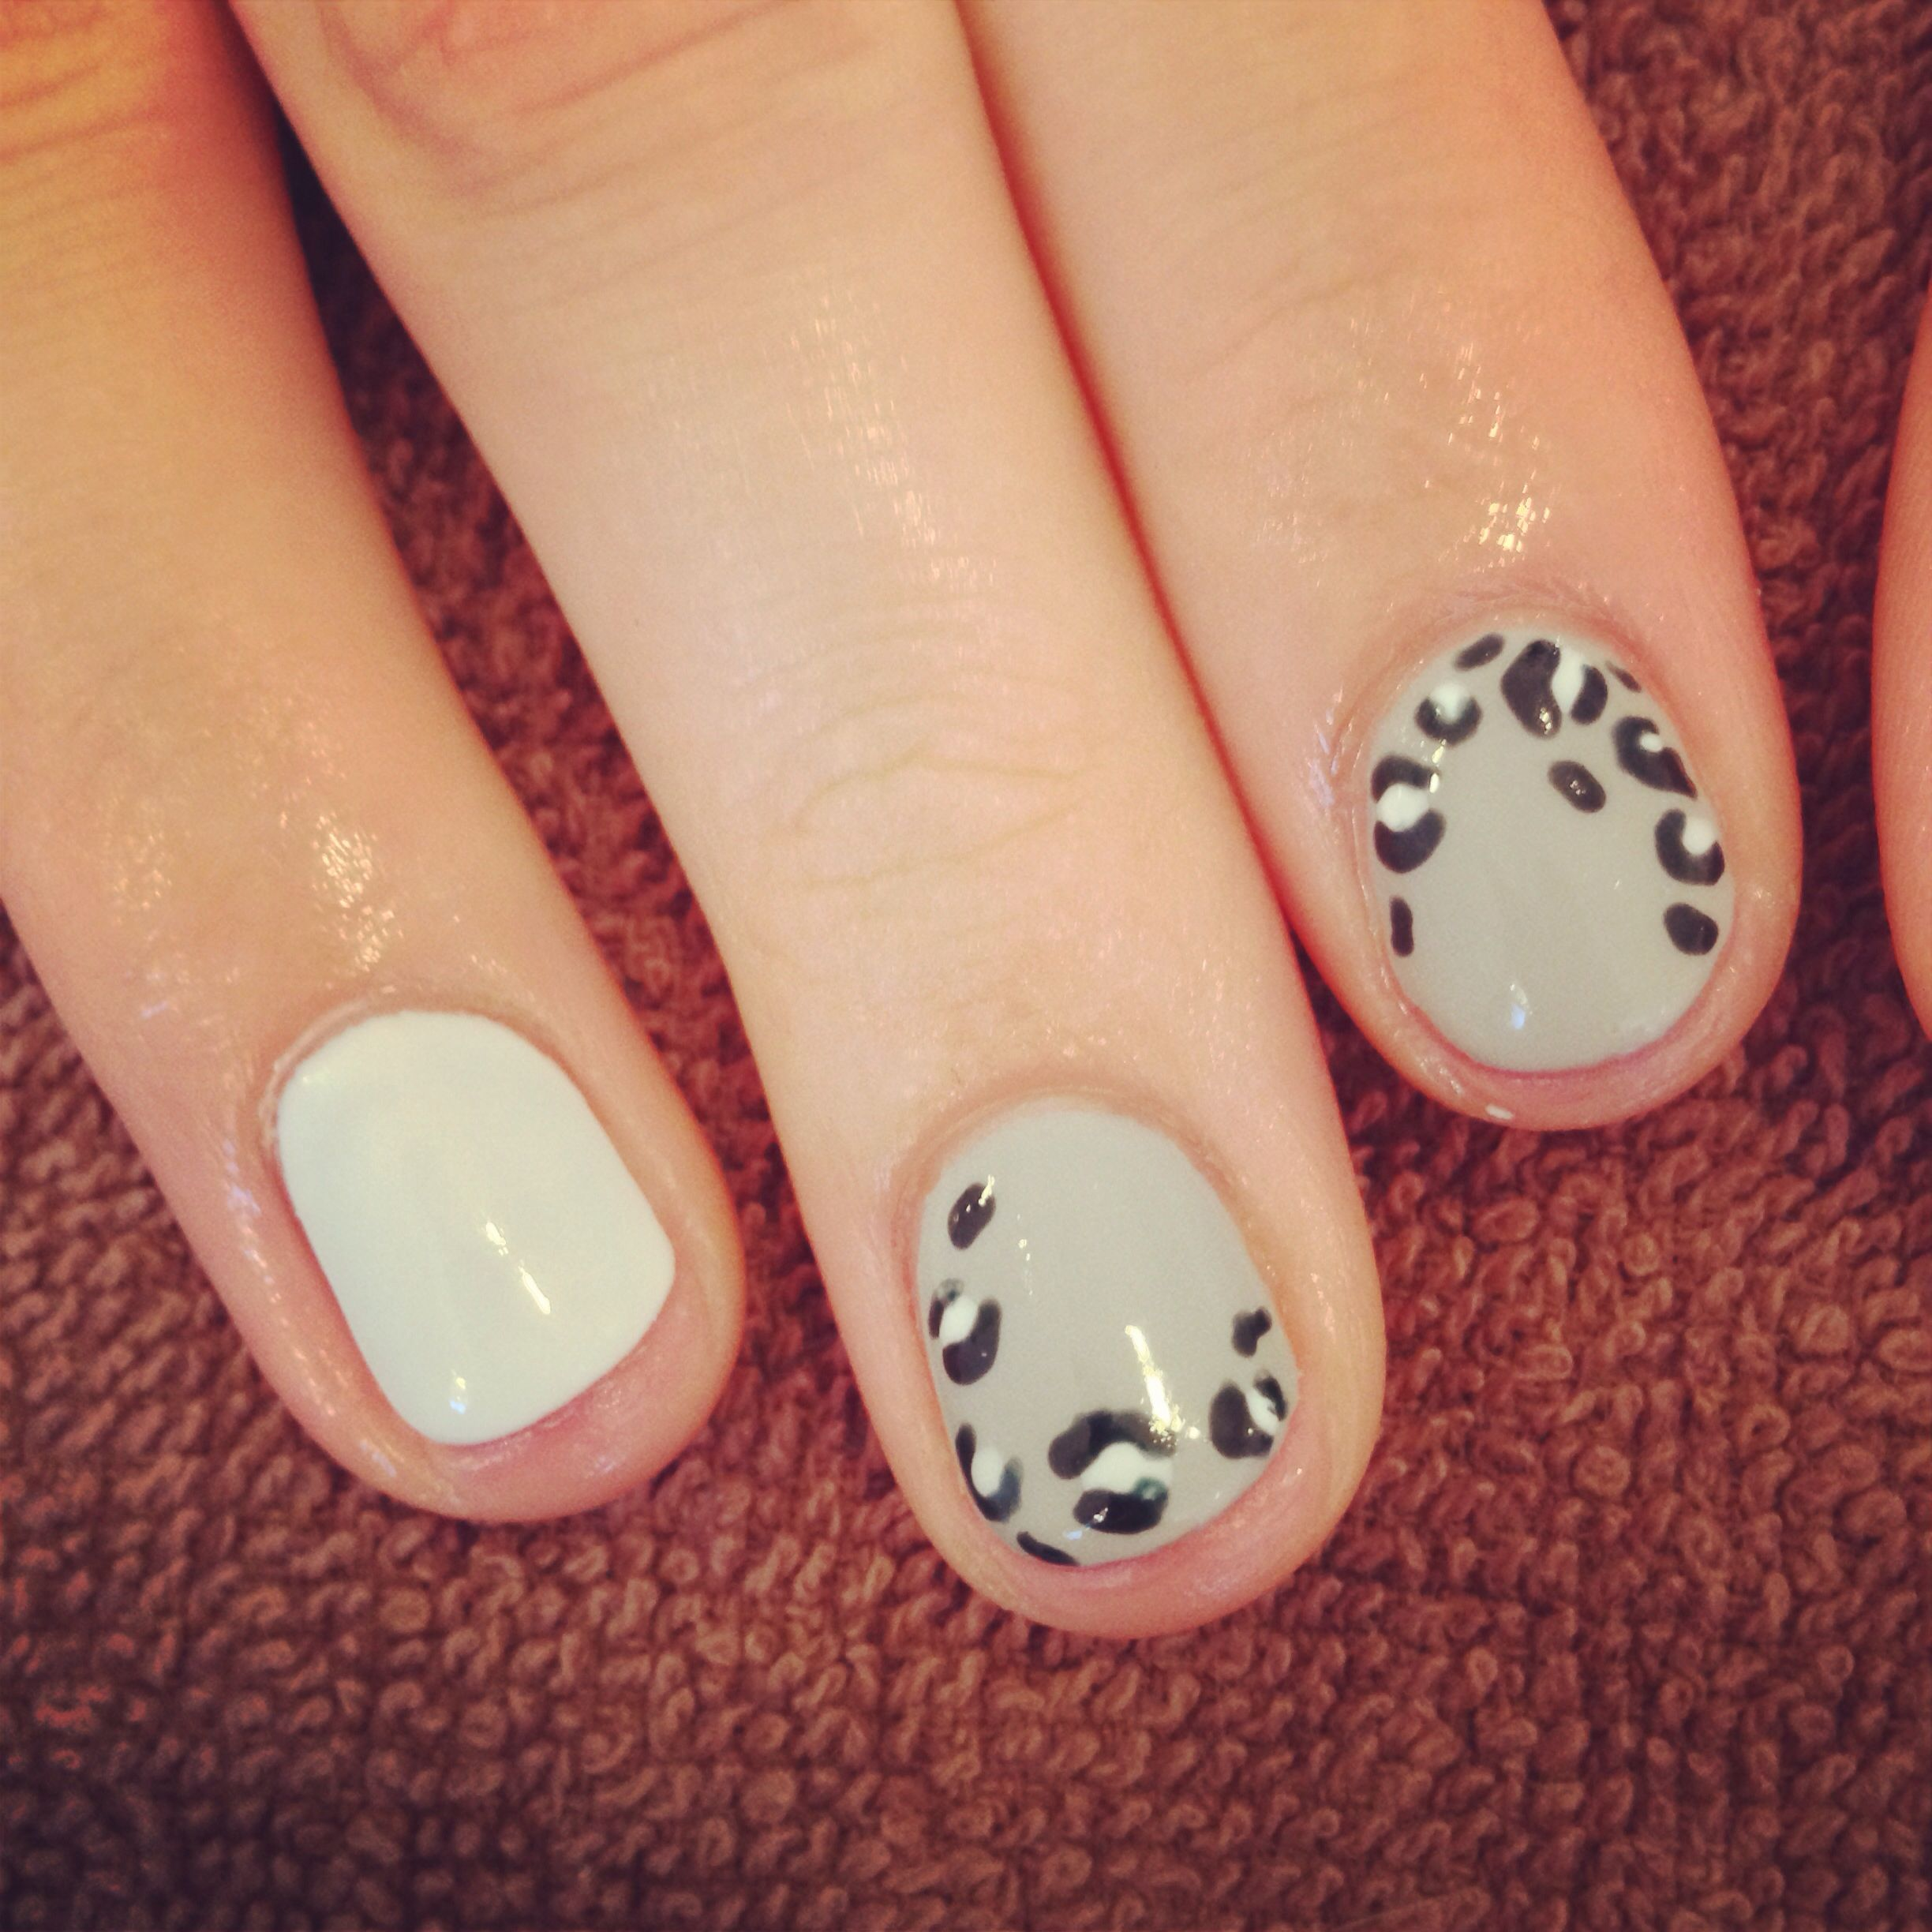 Uñas Decoradas Leopardo Snow Leopard Gelish Nails Gelish Nails Uñas Gelish